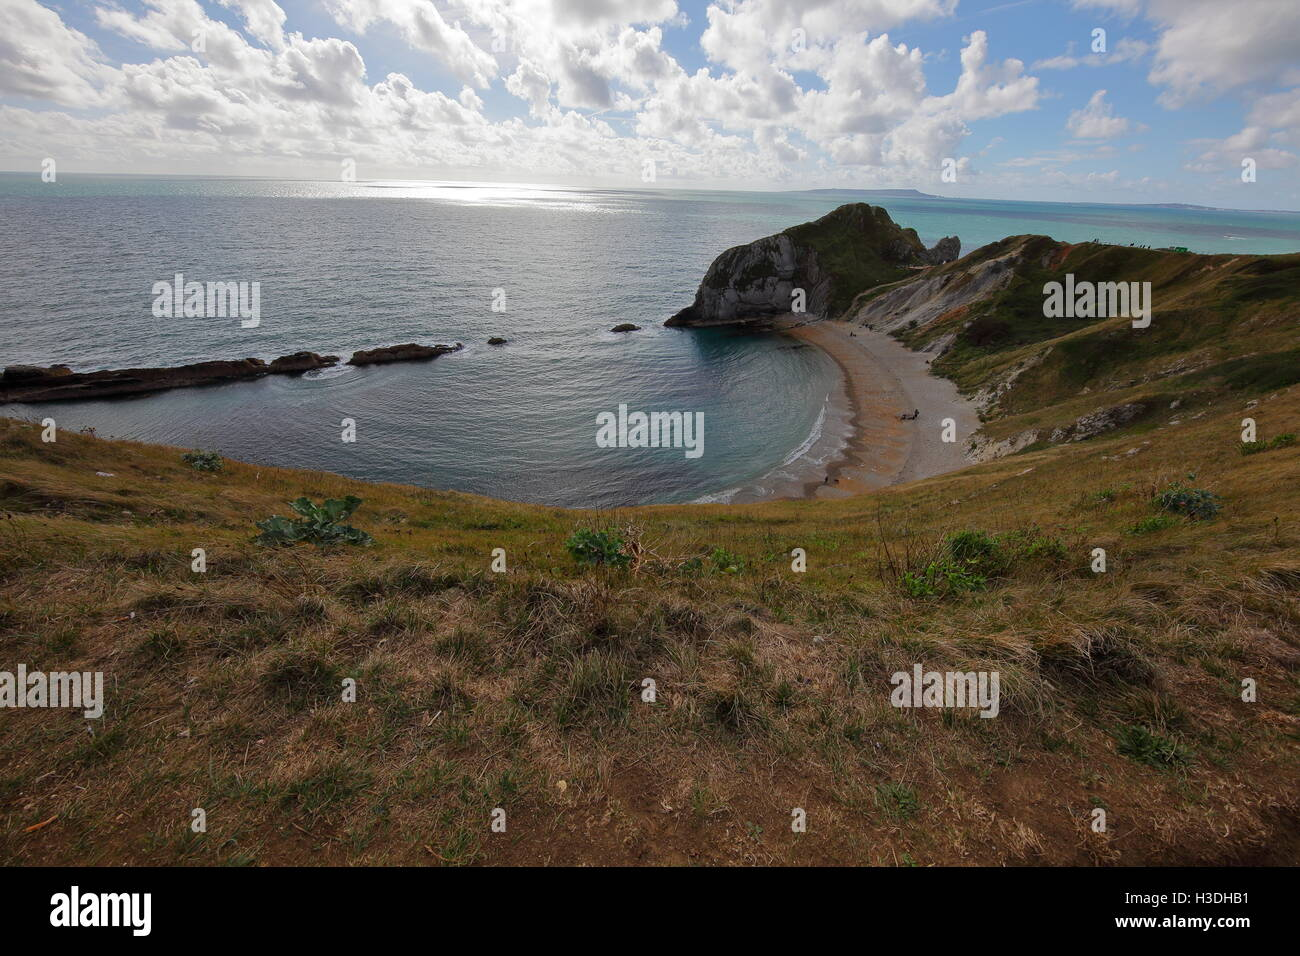 Looking towards a large rock outcrop on one end of a natural bay formed in the soft chalk with a shingle beach on - Stock Image